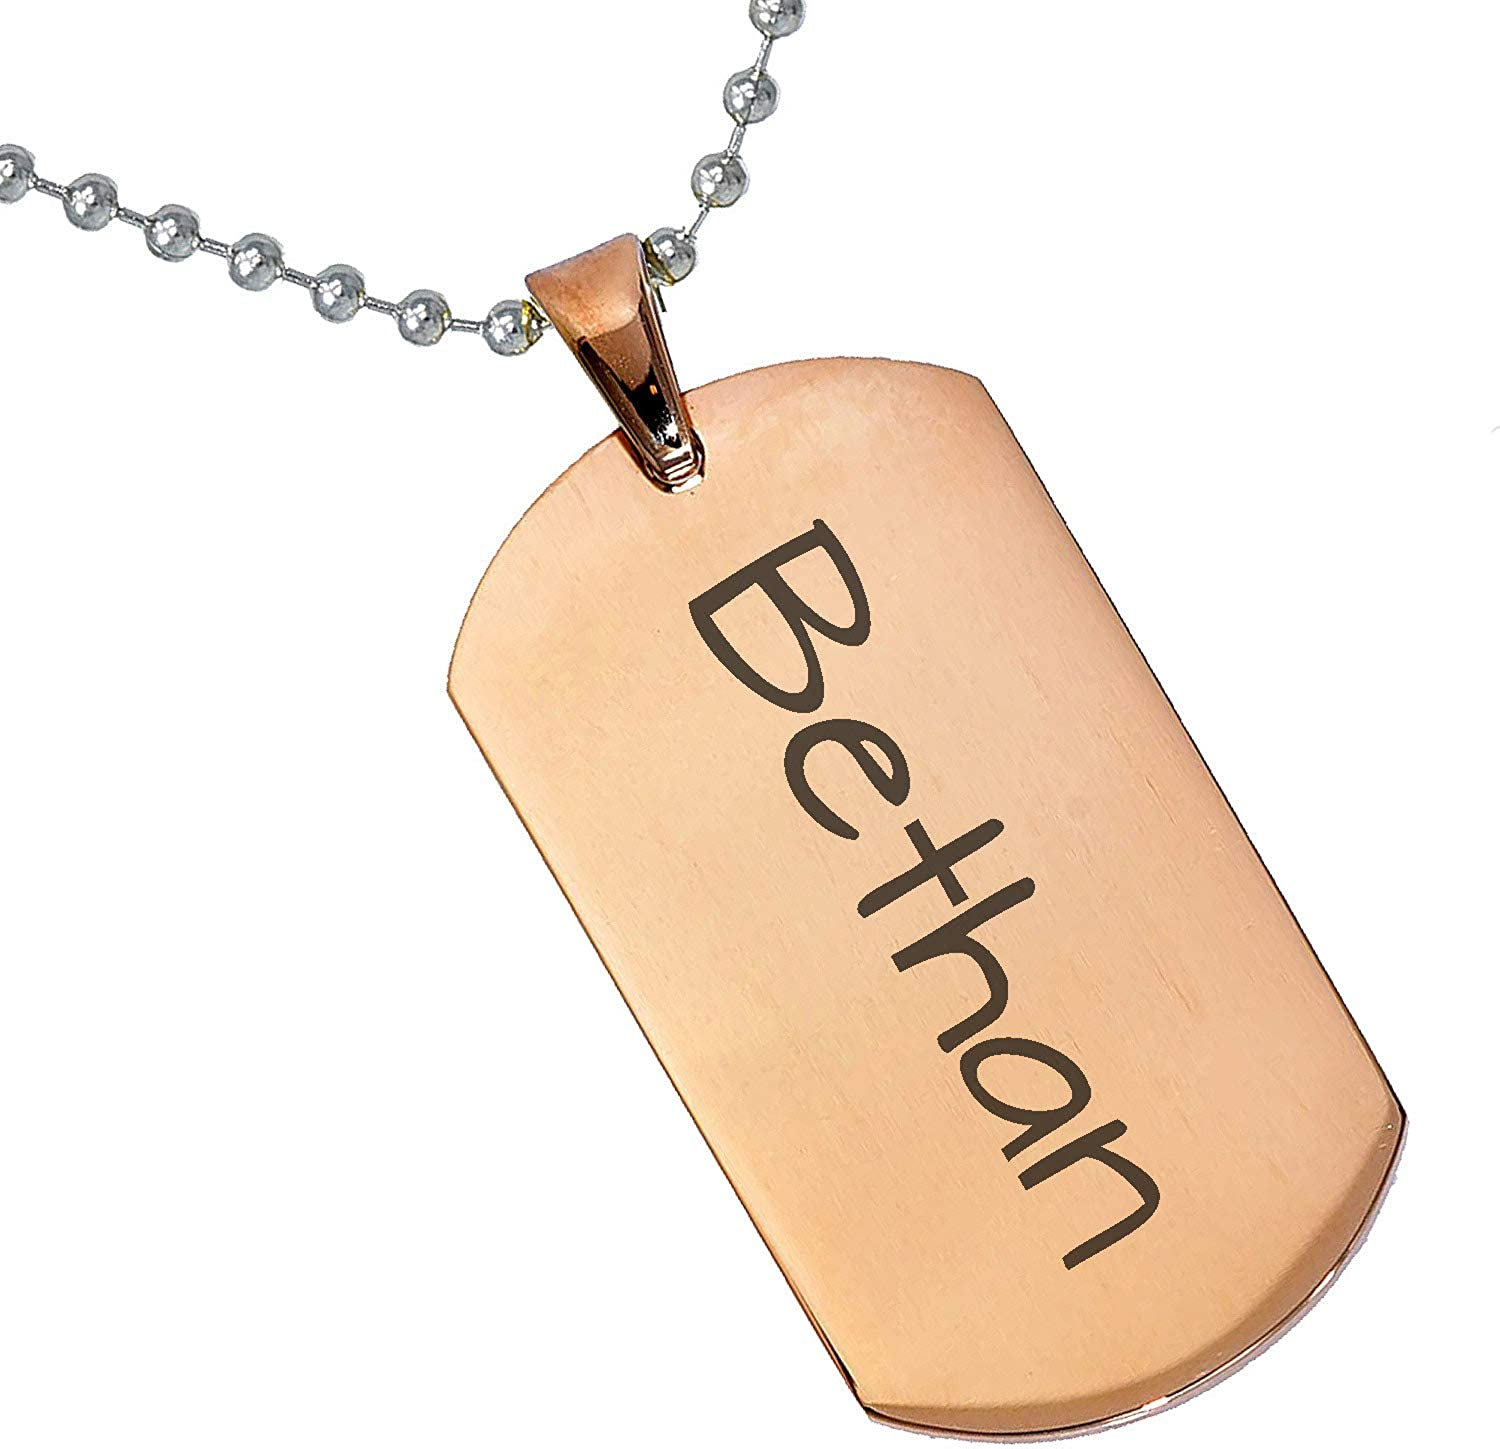 Stainless Steel Silver Gold Black Rose Gold Color Baby Name Bethan Engraved Personalized Gifts For Son Daughter Boyfriend Girlfriend Initial Customizable Pendant Necklace Dog Tags 24 Ball Chain